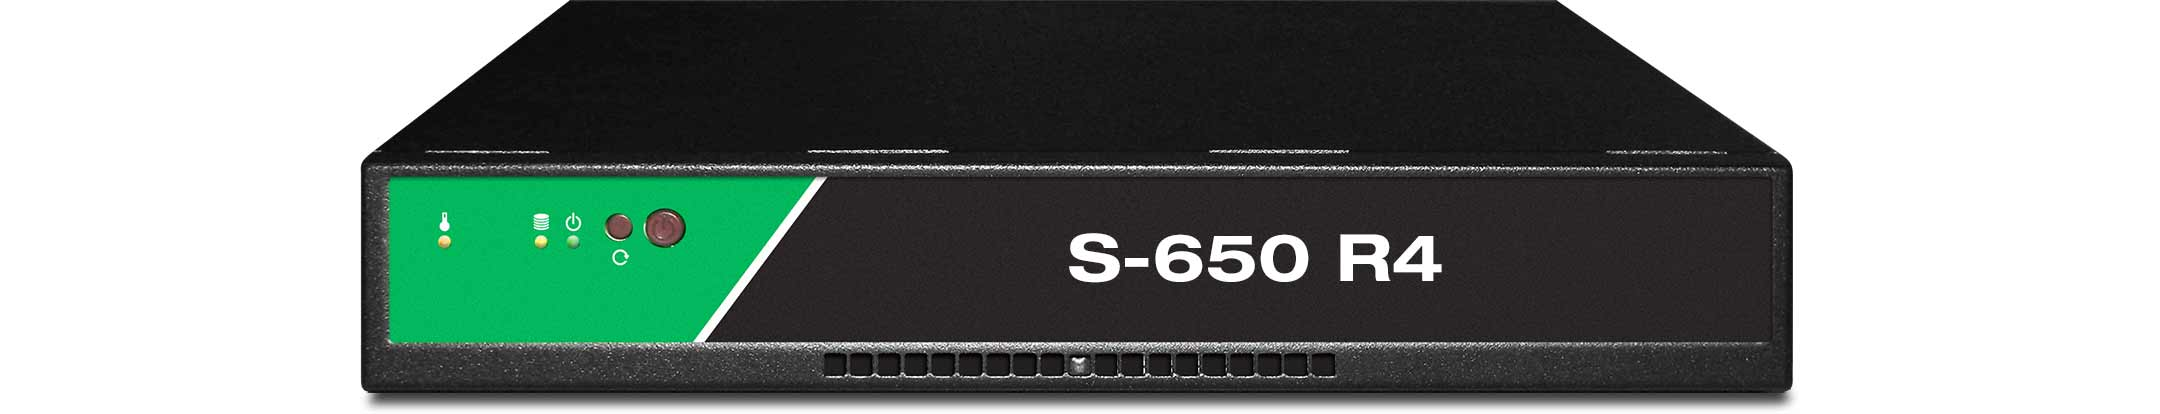 UNICOM Engineering Server Platform - S-650 R4